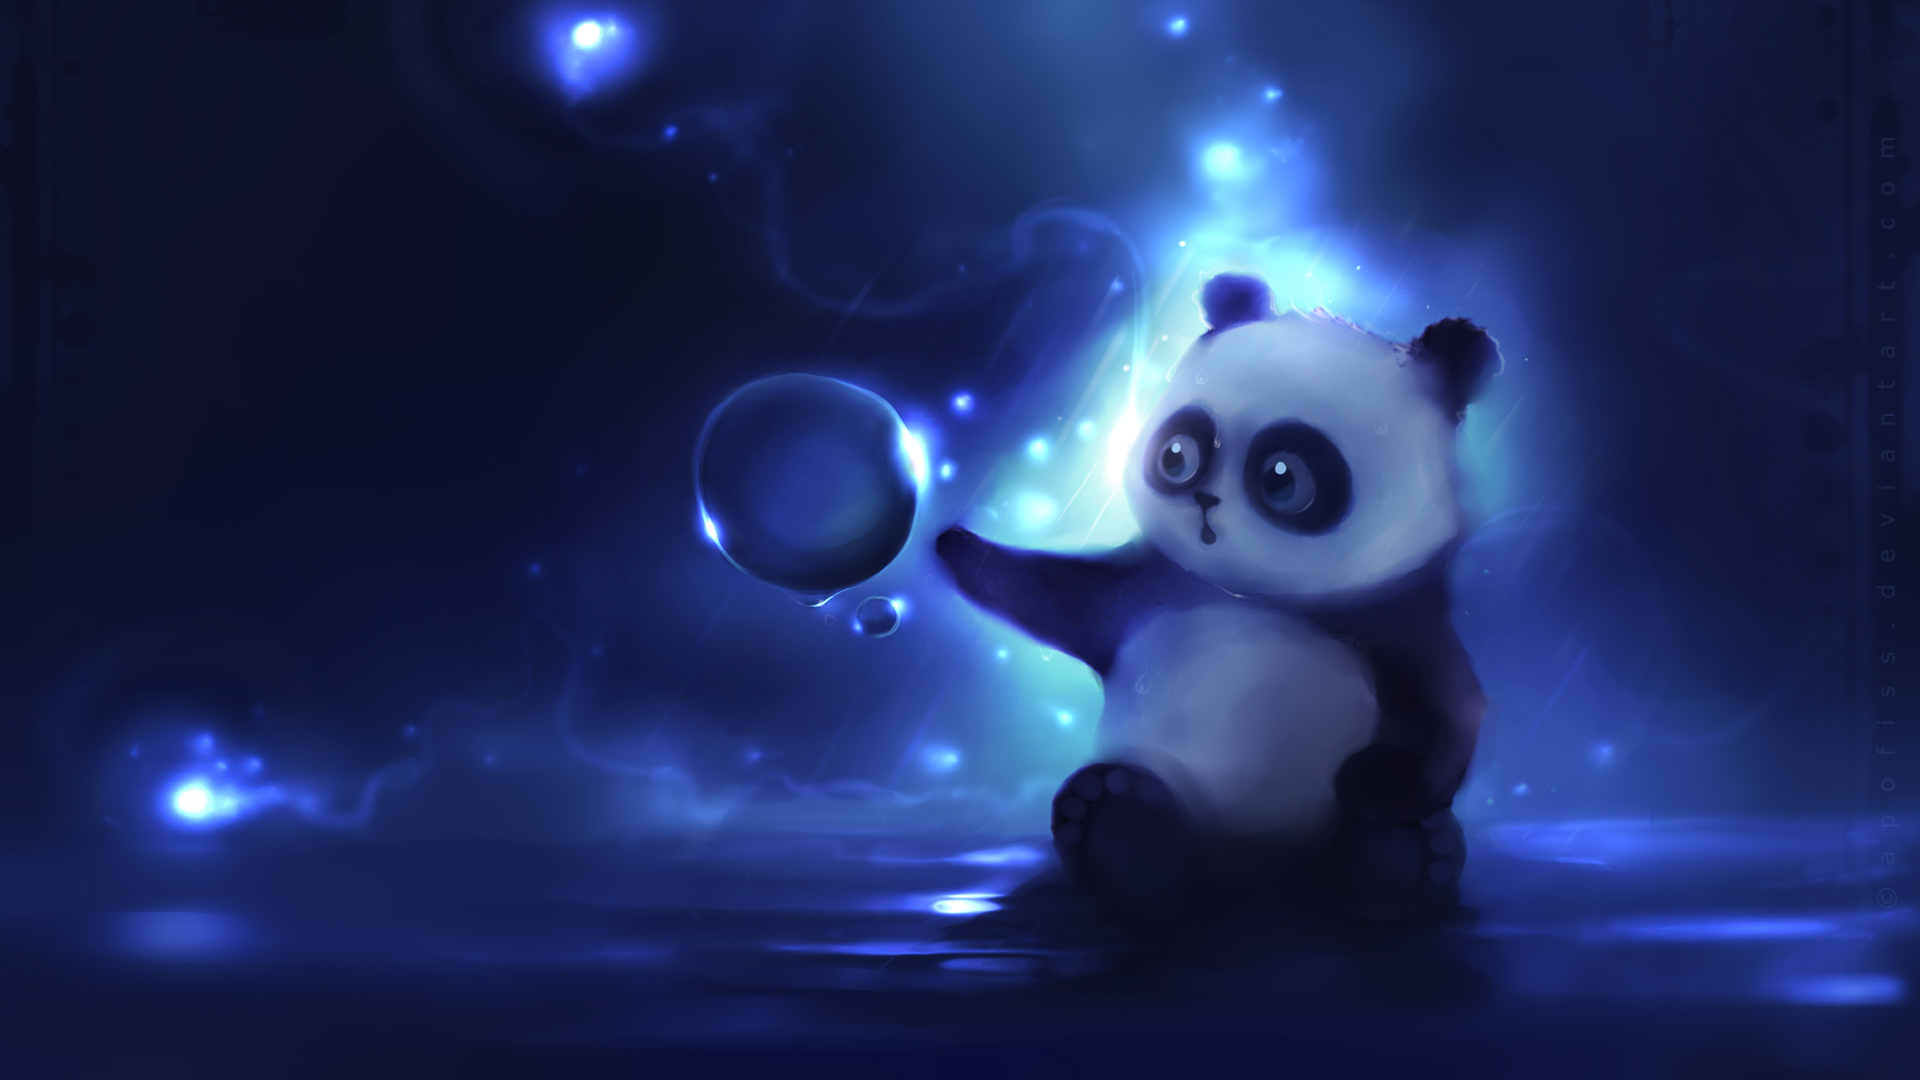 Cute Baby Panda Wallpaper Hd Wallpaperlepi